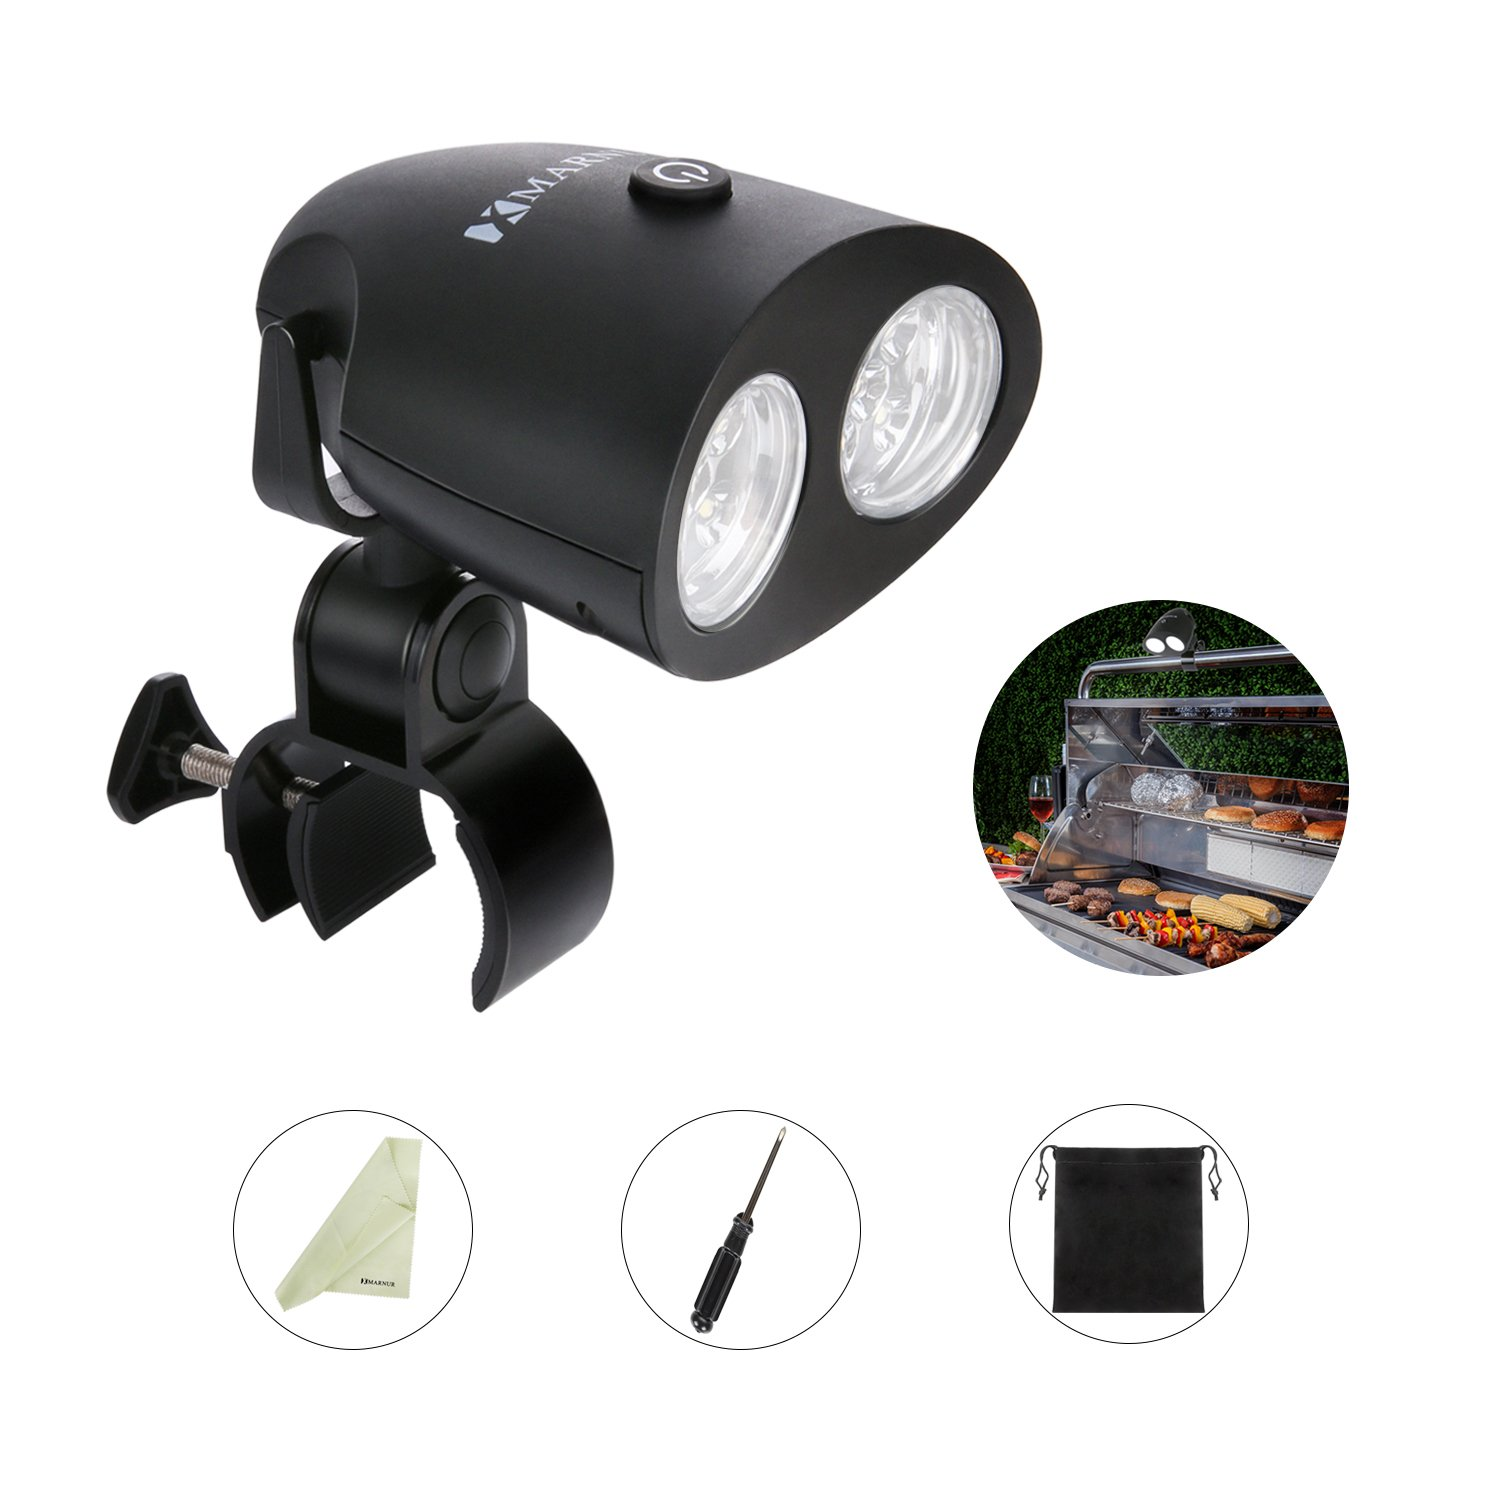 MARNUR BBQ Grill Light Barbecue Grill Lighting - Reading Camping Lights 10 LED Light Ultra Bright for Gas Charcoal and Electric Grill Light Waterproof with 360°Rotation by 【2018 Upgrade】